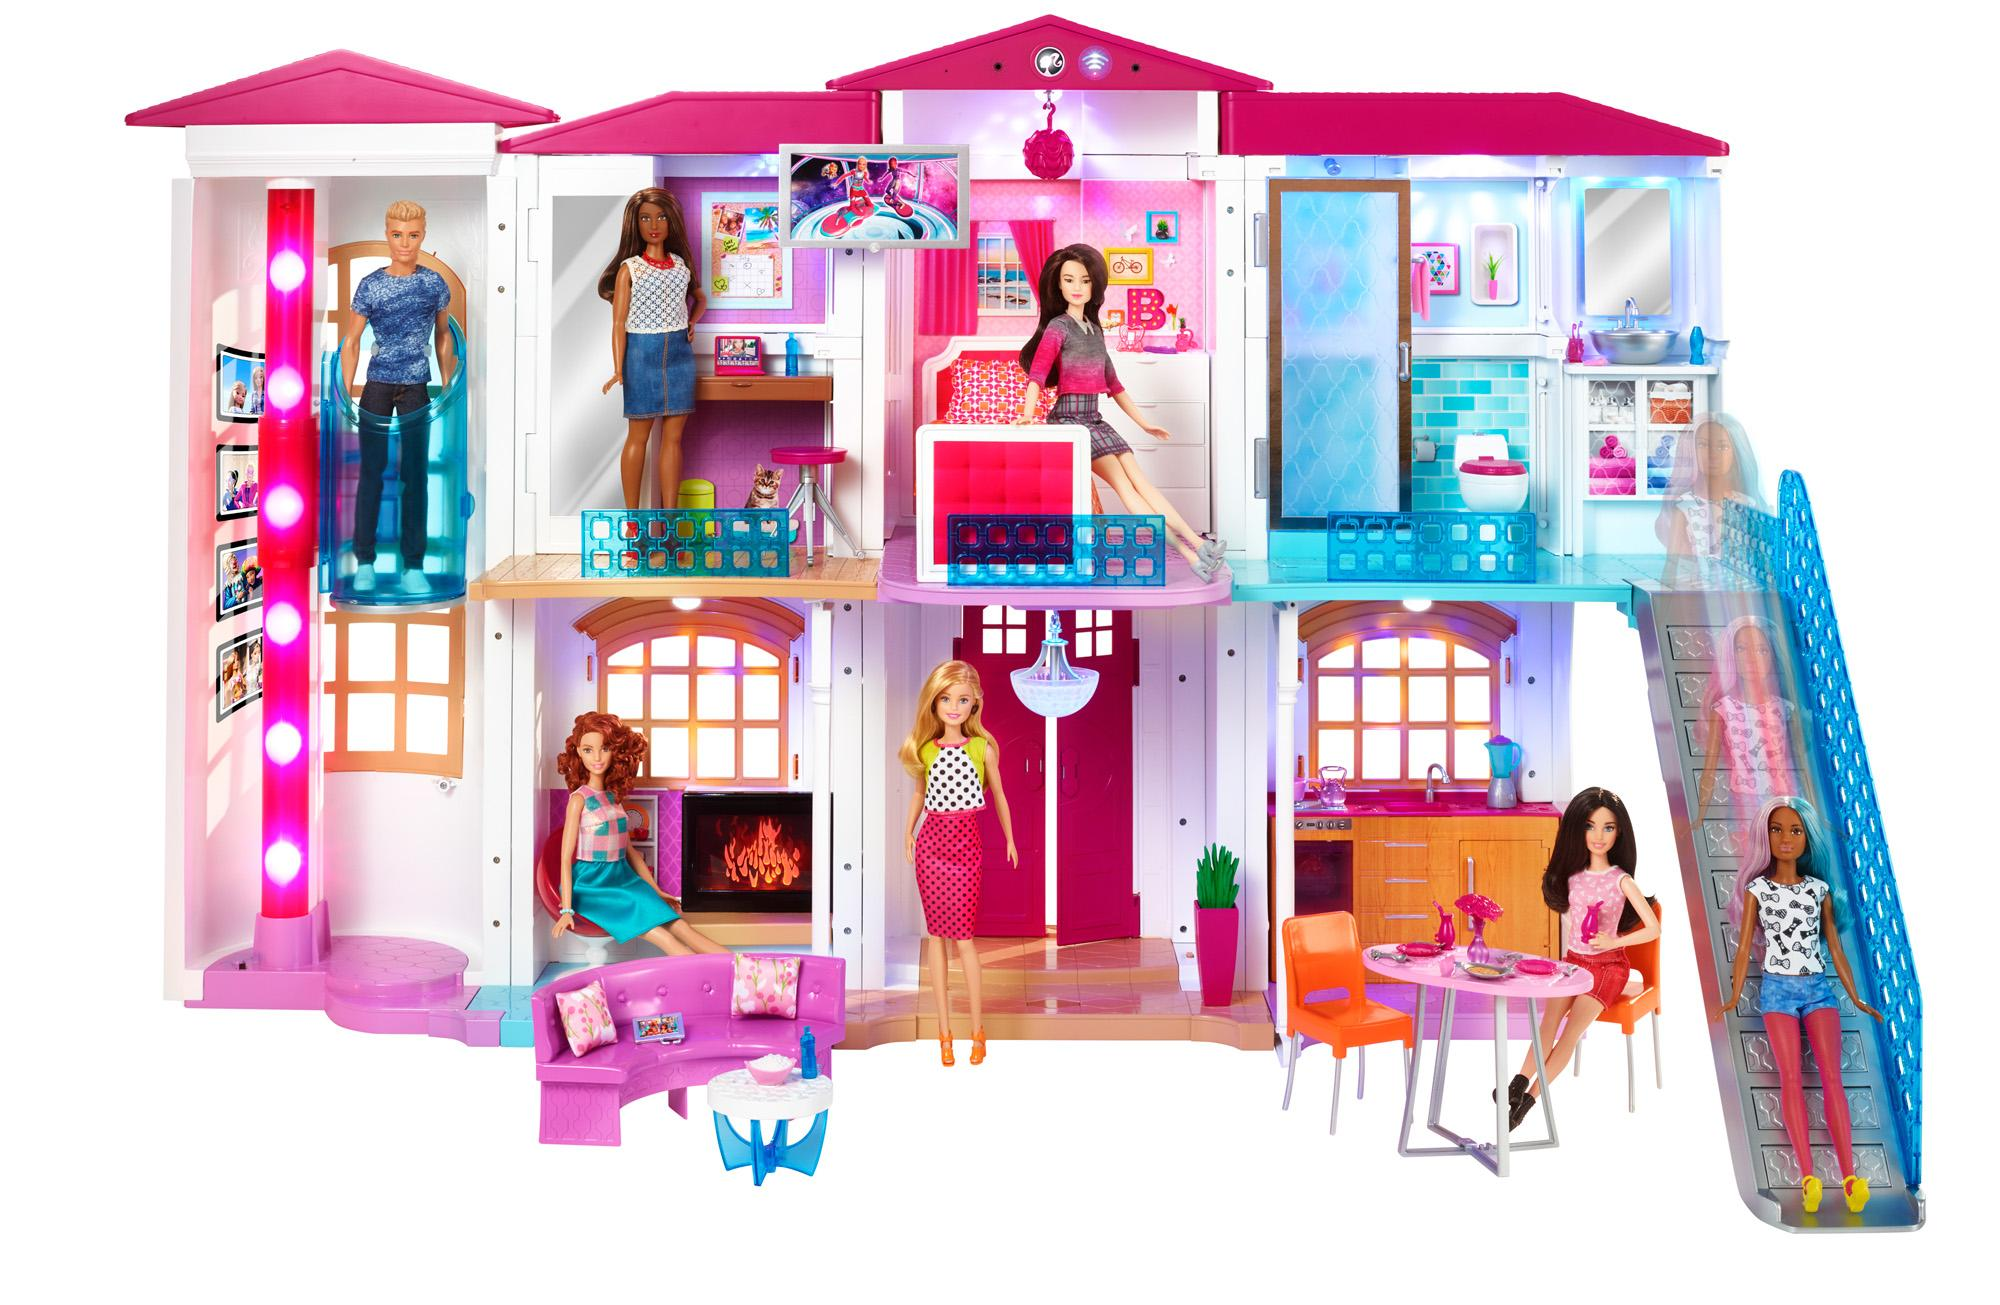 Living Room Drawing 2016 New Barbie Hello Dream House Dreamhouse Playset Smart